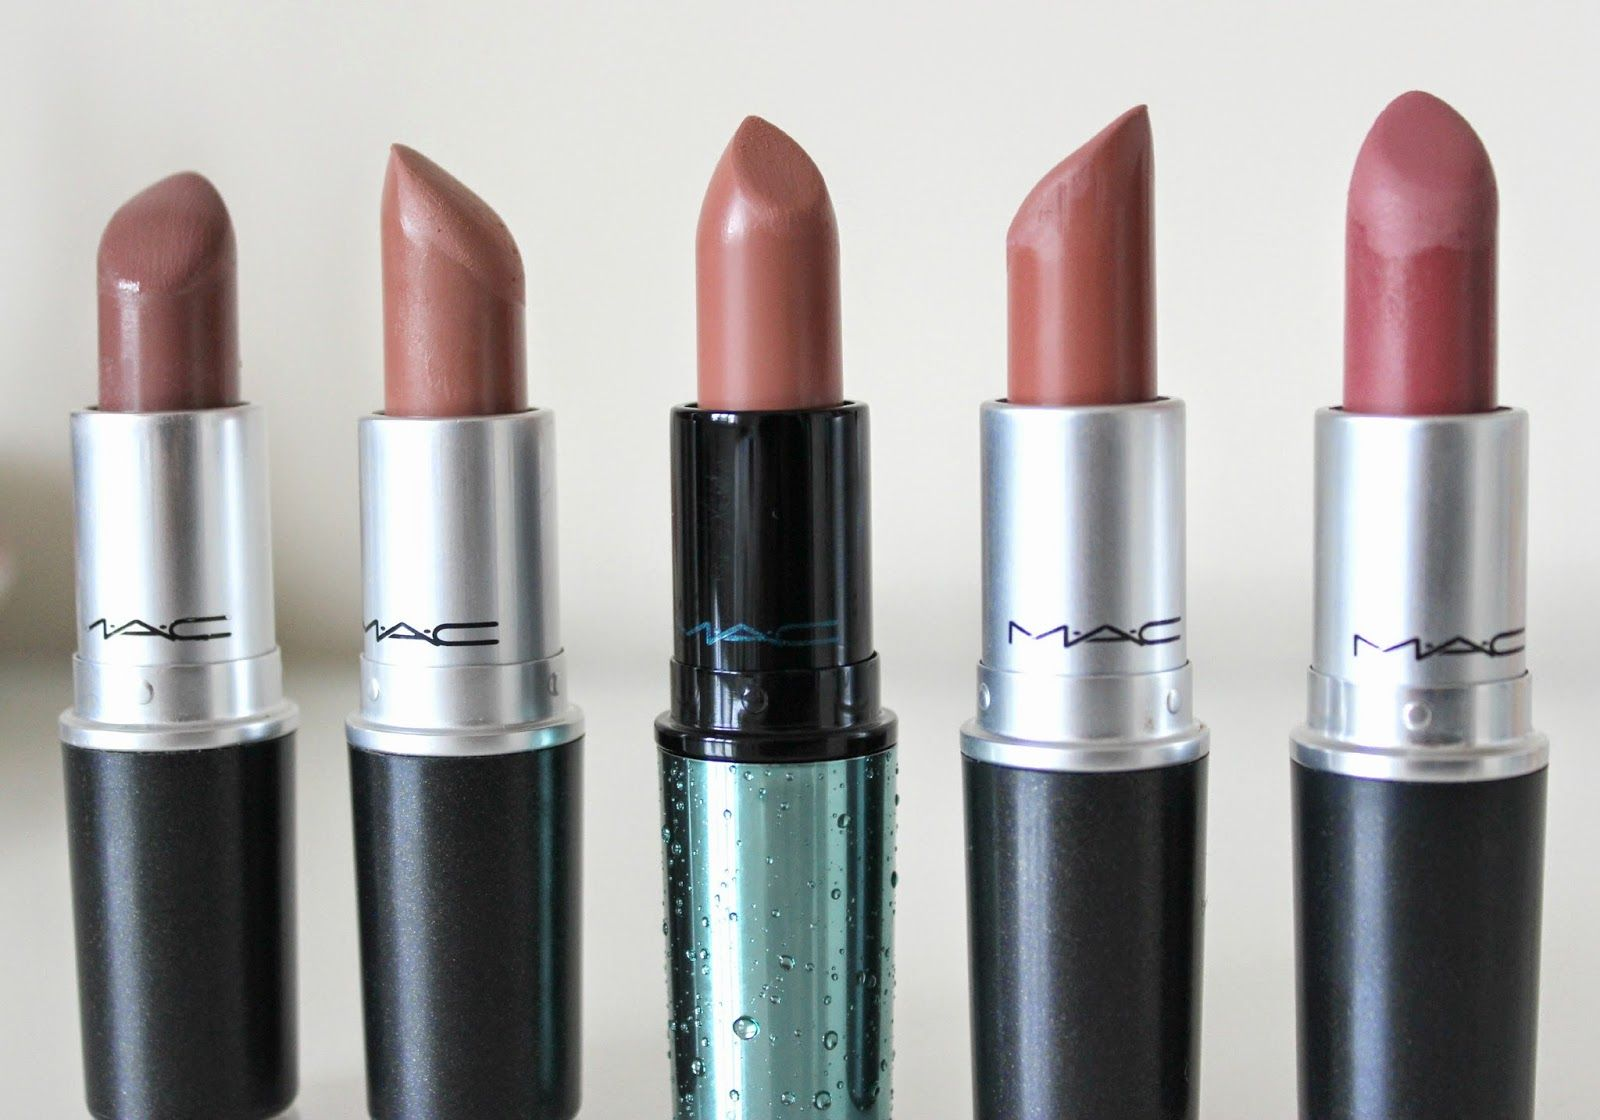 Top mac nude lipsticks for fall